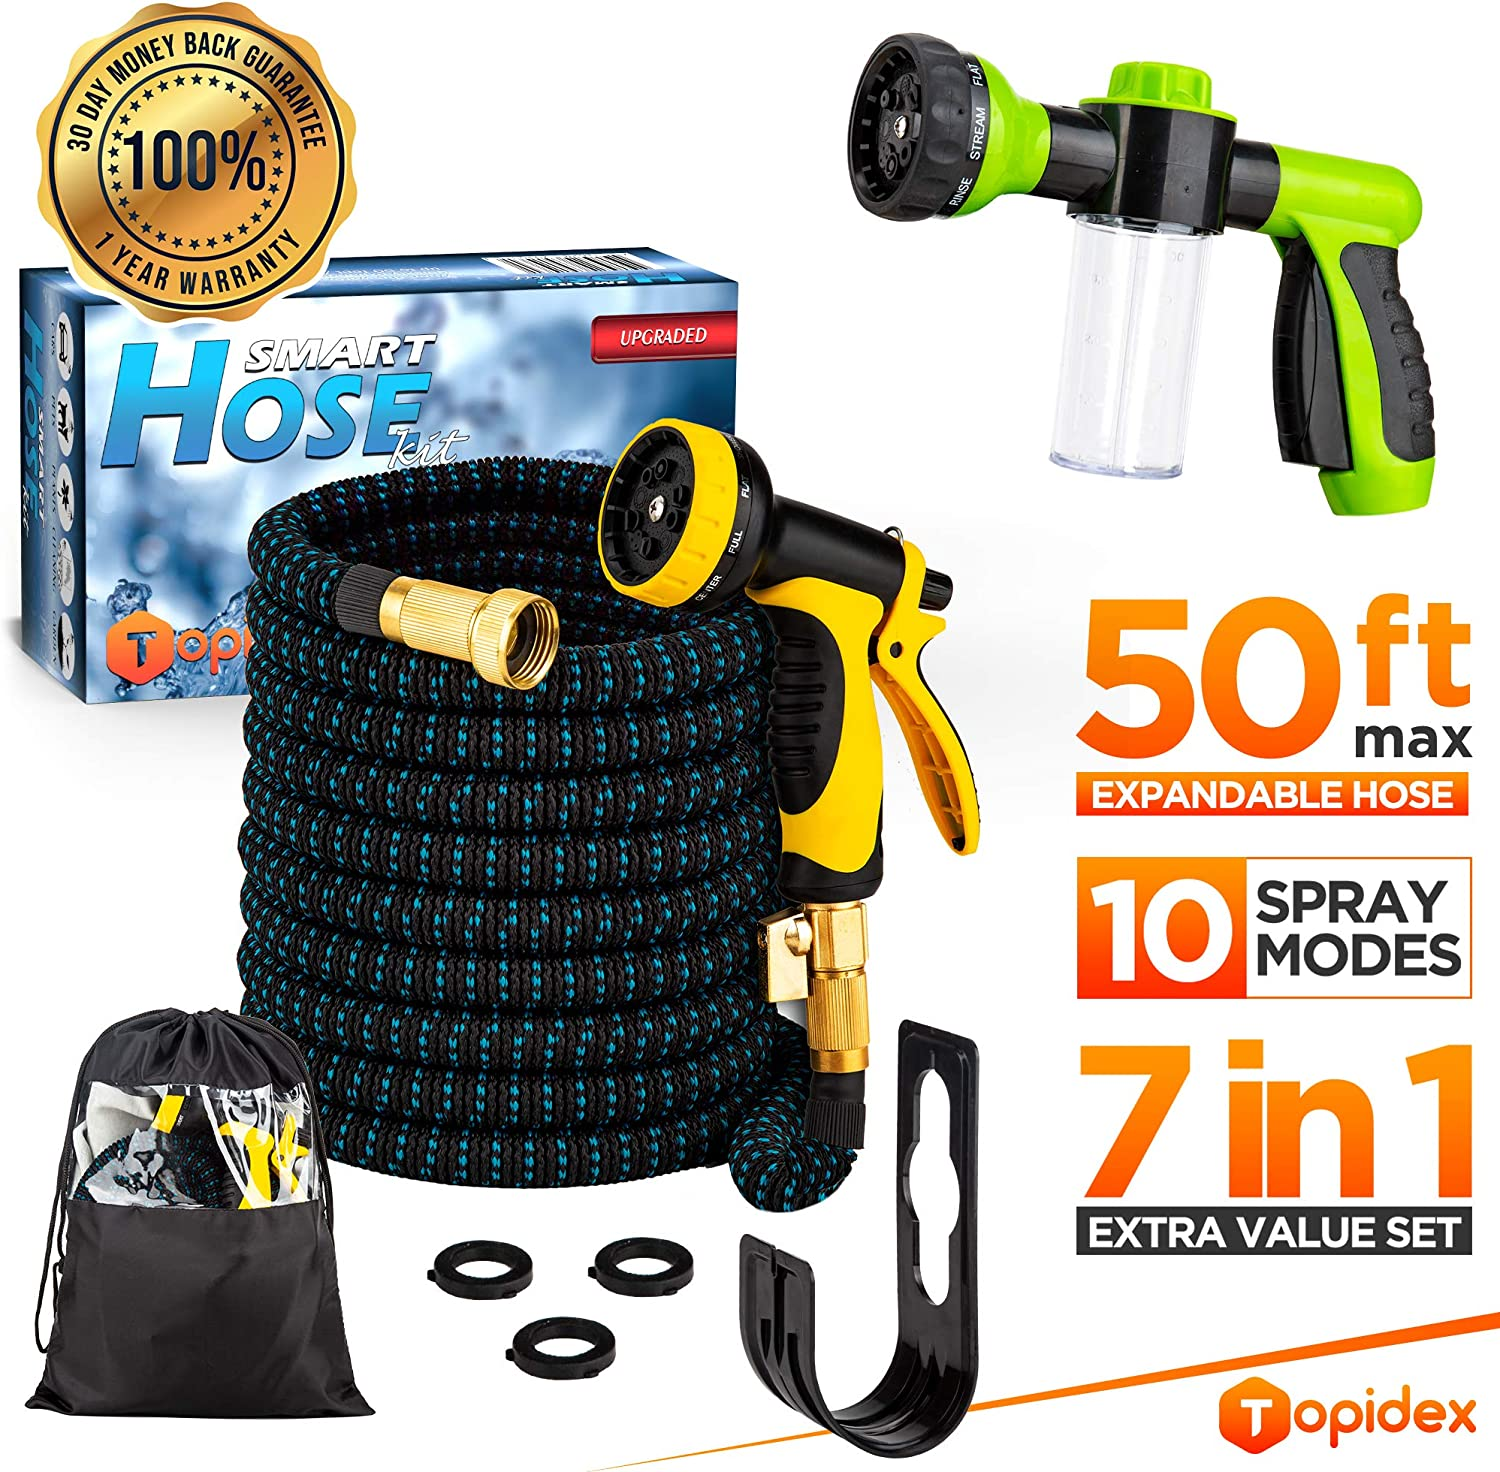 Topidex Expandable Garden Water Hose, 50 ft - Comb Set with High Pressure Spray Nozzle - Soap Dispensing Sprayer Gun - 9 Spray + 3 Foam Spraying Patterns with Storage Bag, Hanger & 3 Extra Washers